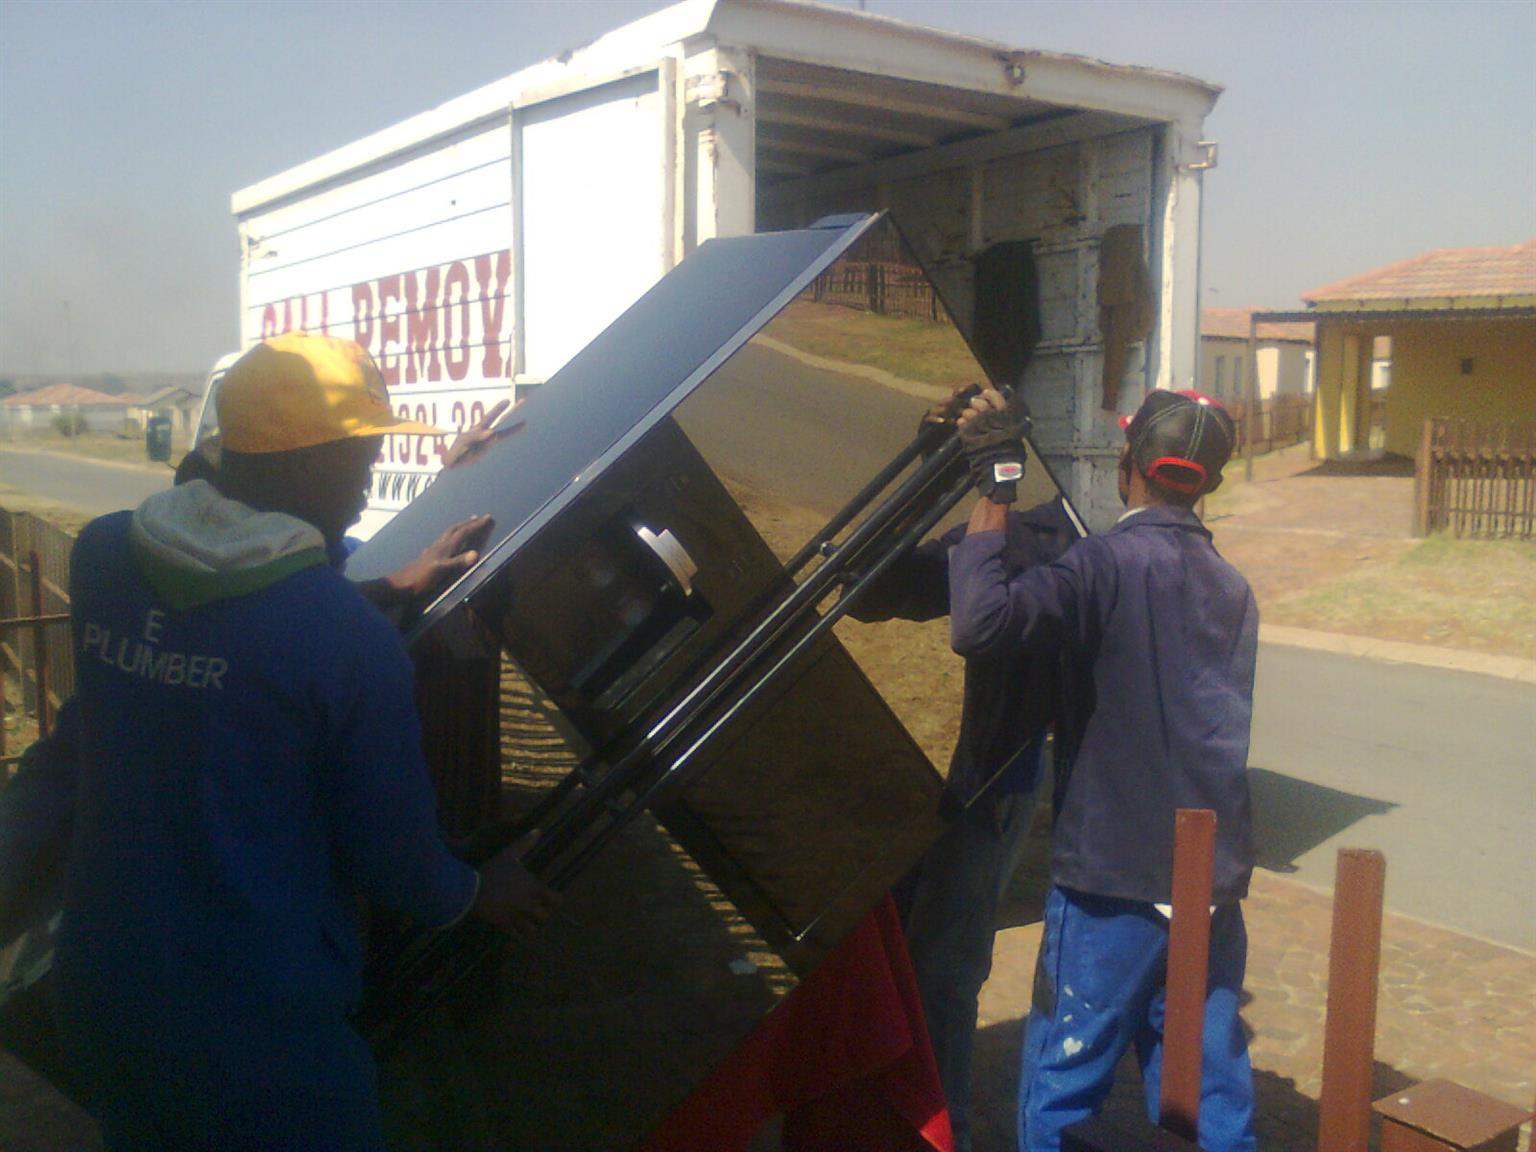 Best moving AHOO STAR LOGISTICS Movers Truck Hire - +27782252795 - Best Rates For Local Hire